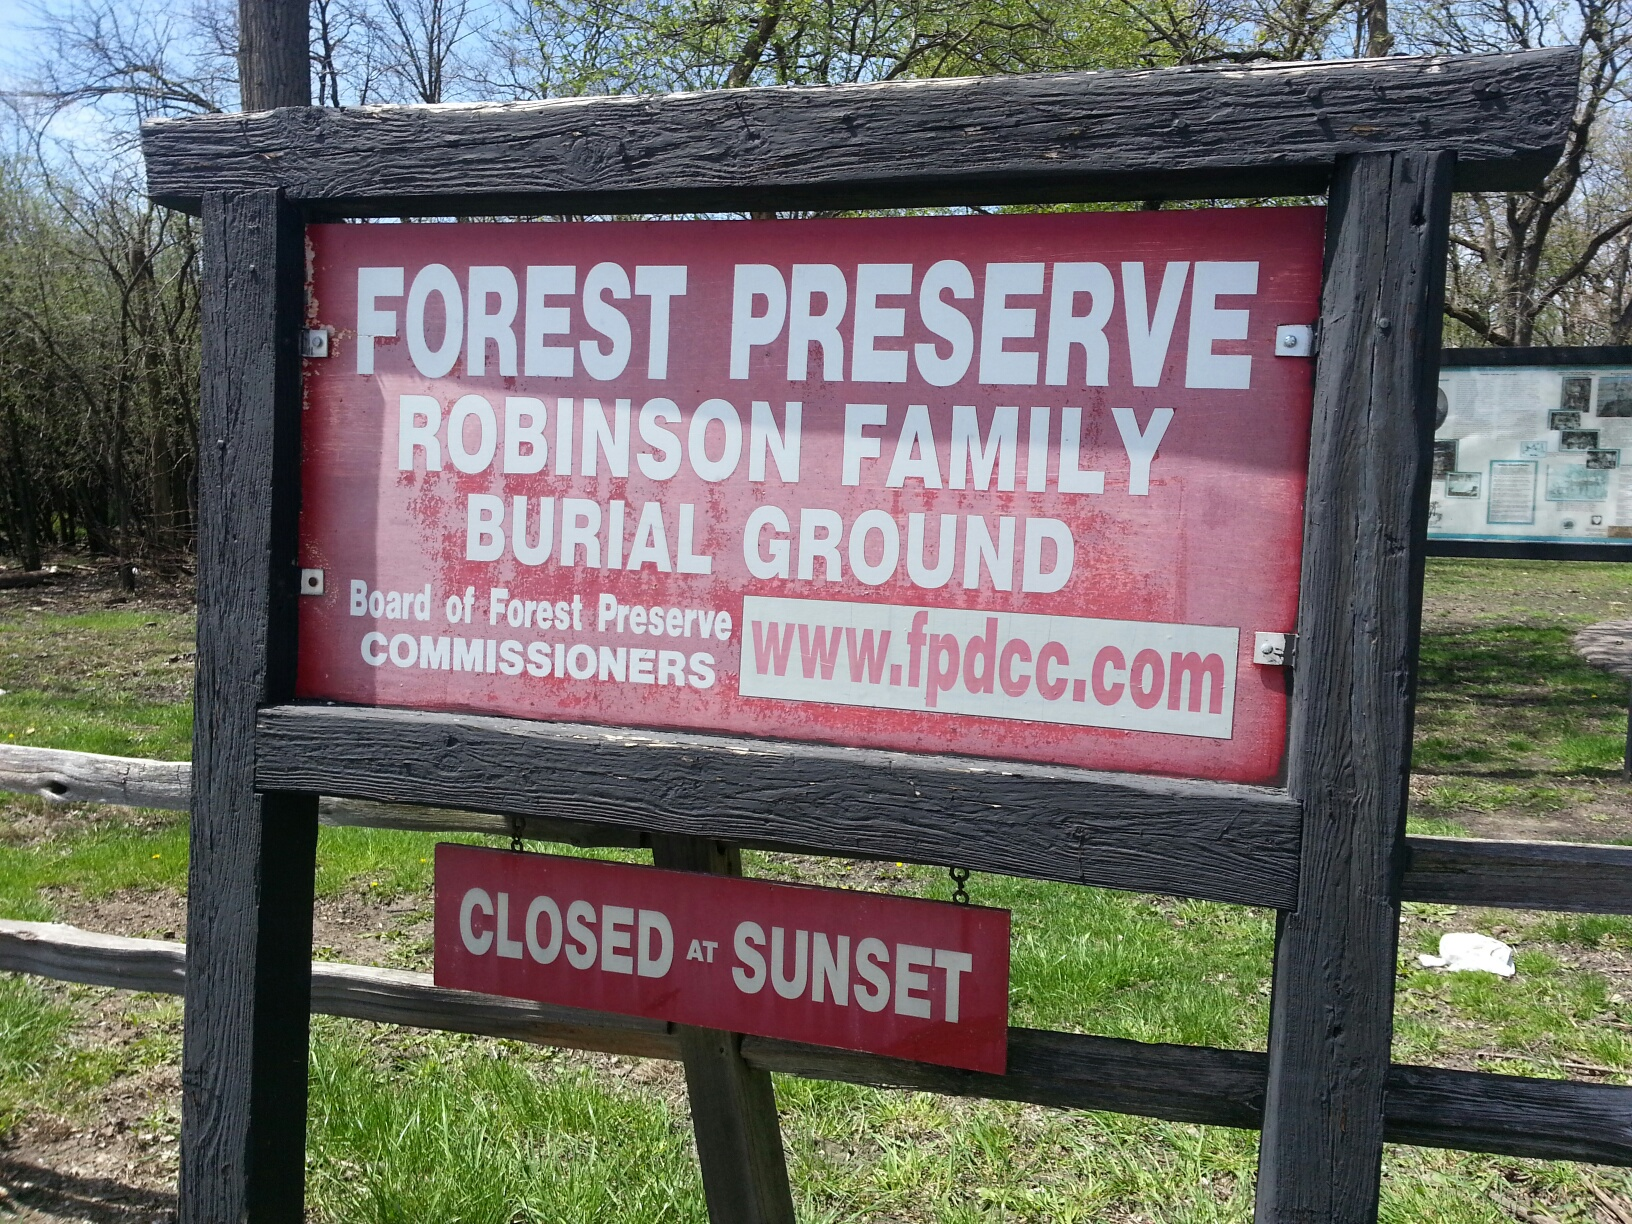 Robinson Family Burial Ground and Robinson Preserve